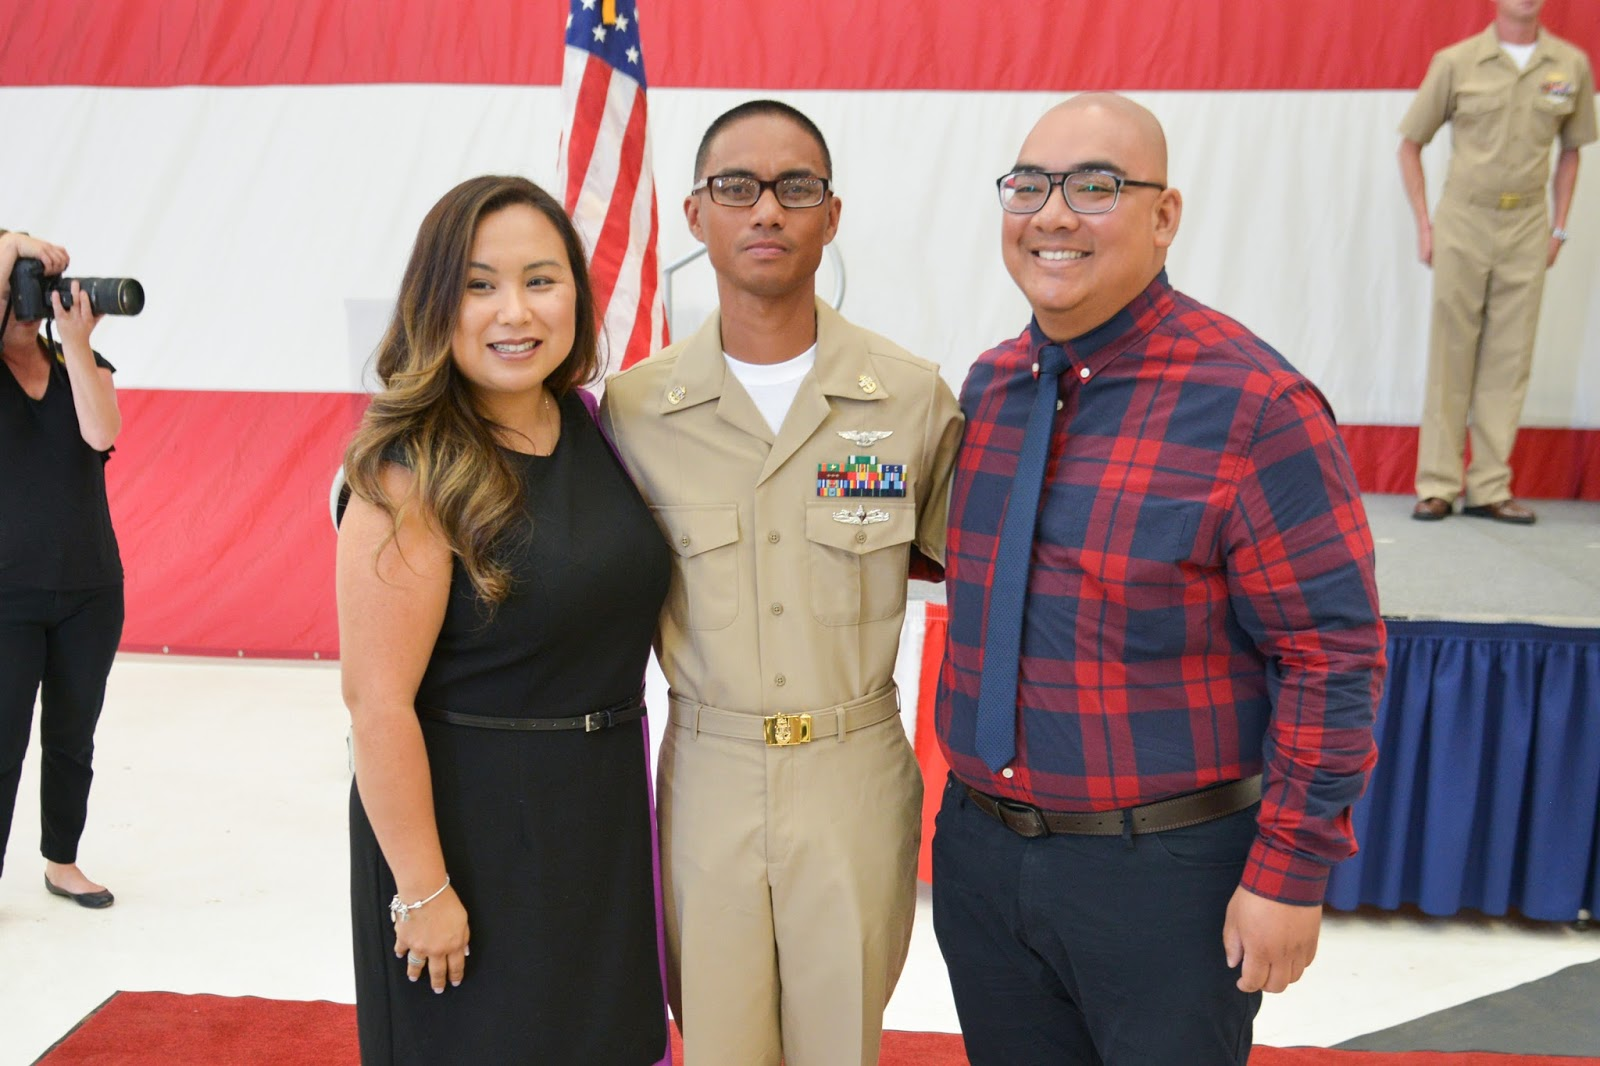 Long Beach Native Earns Coveted Title Of Navy Chief Petty Officer